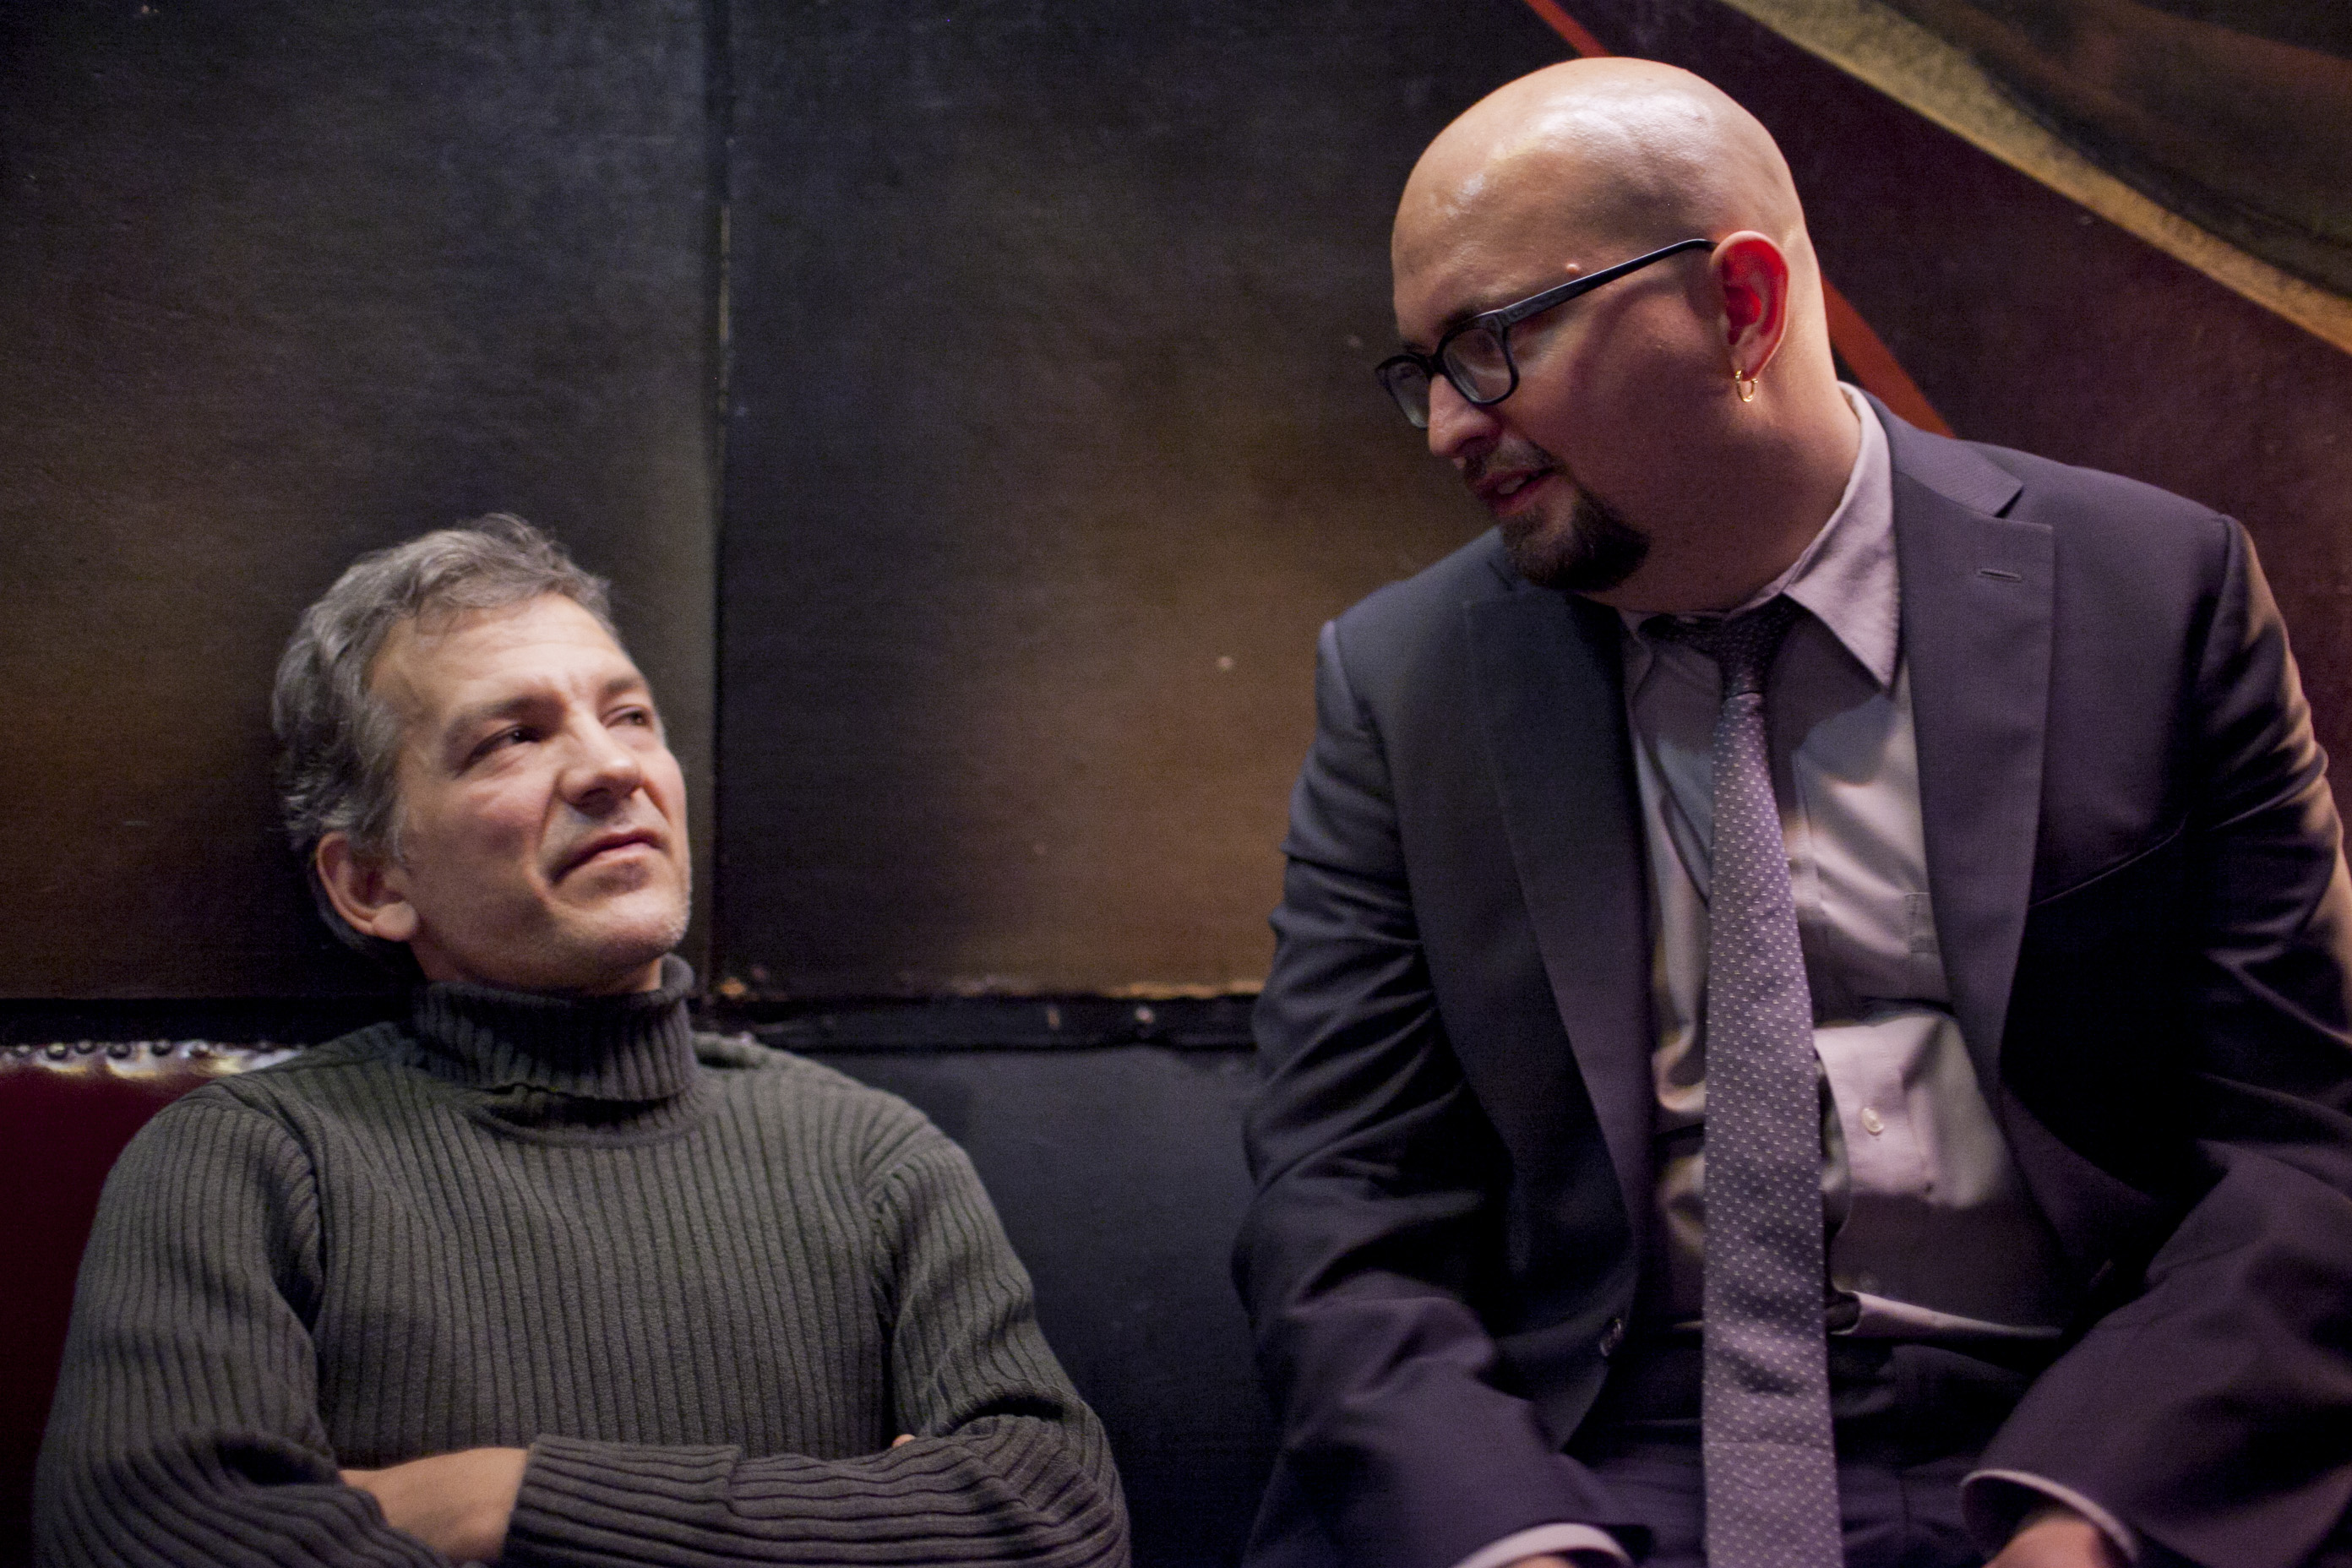 Pianist Brad Mehldau, left, came by the Village Vanguard to see his friends play. He chats with fellow piansit Ethan Iverson.